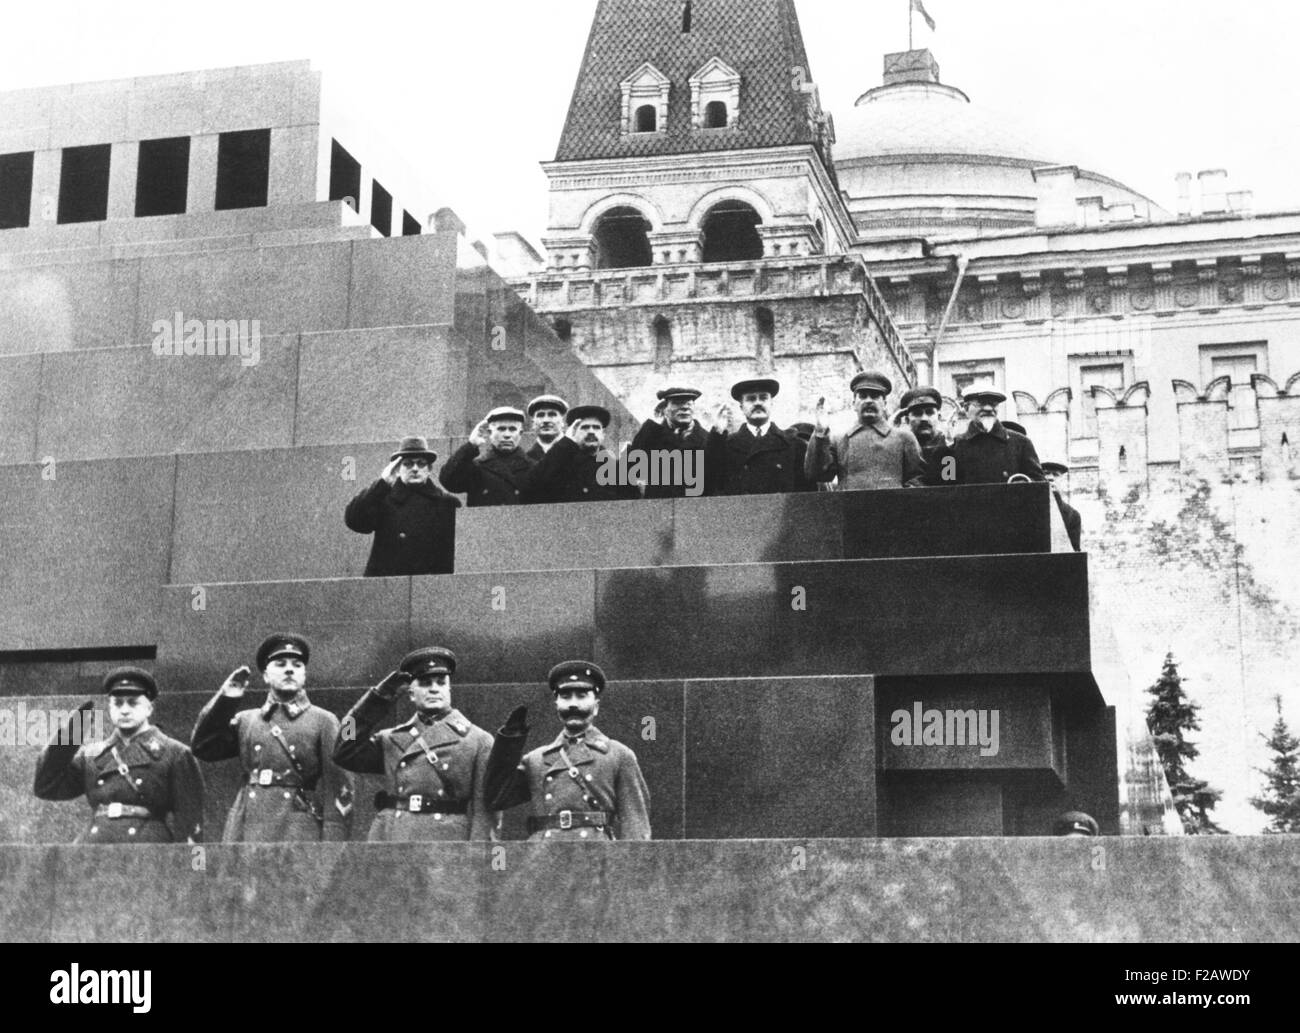 Soviet leaders on Lenin's tomb during for the 19th Anniversary of the October Revolution. Moscow, Nov. 17, 1936. - Stock Image